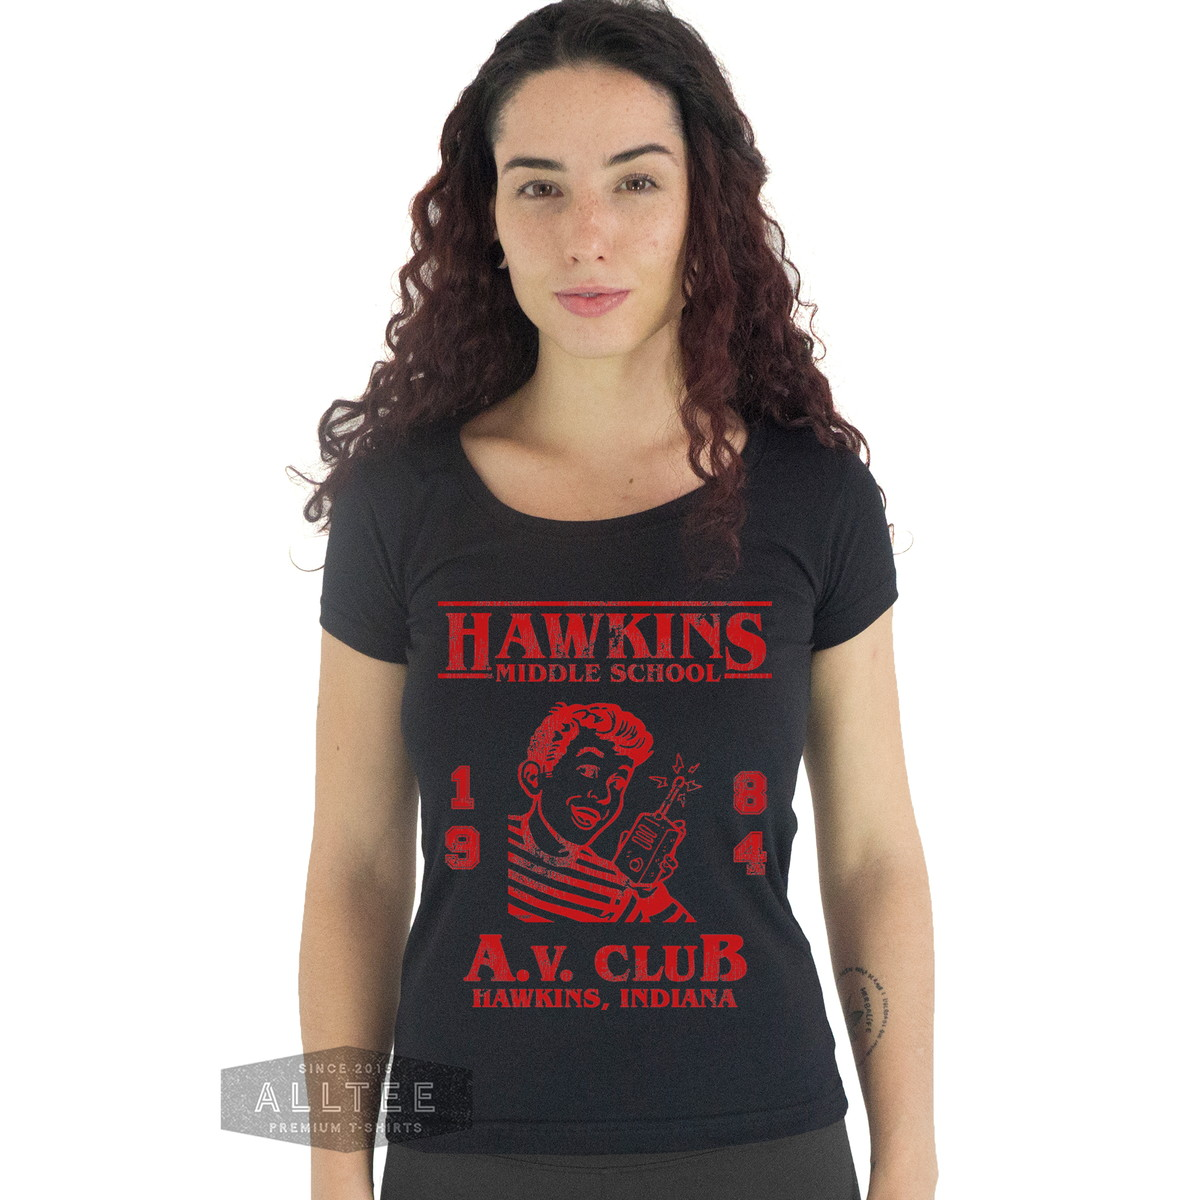 Camiseta Feminina Stranger Things Av Club Colegial Camisa no Elo7 ... 34b53726c45db